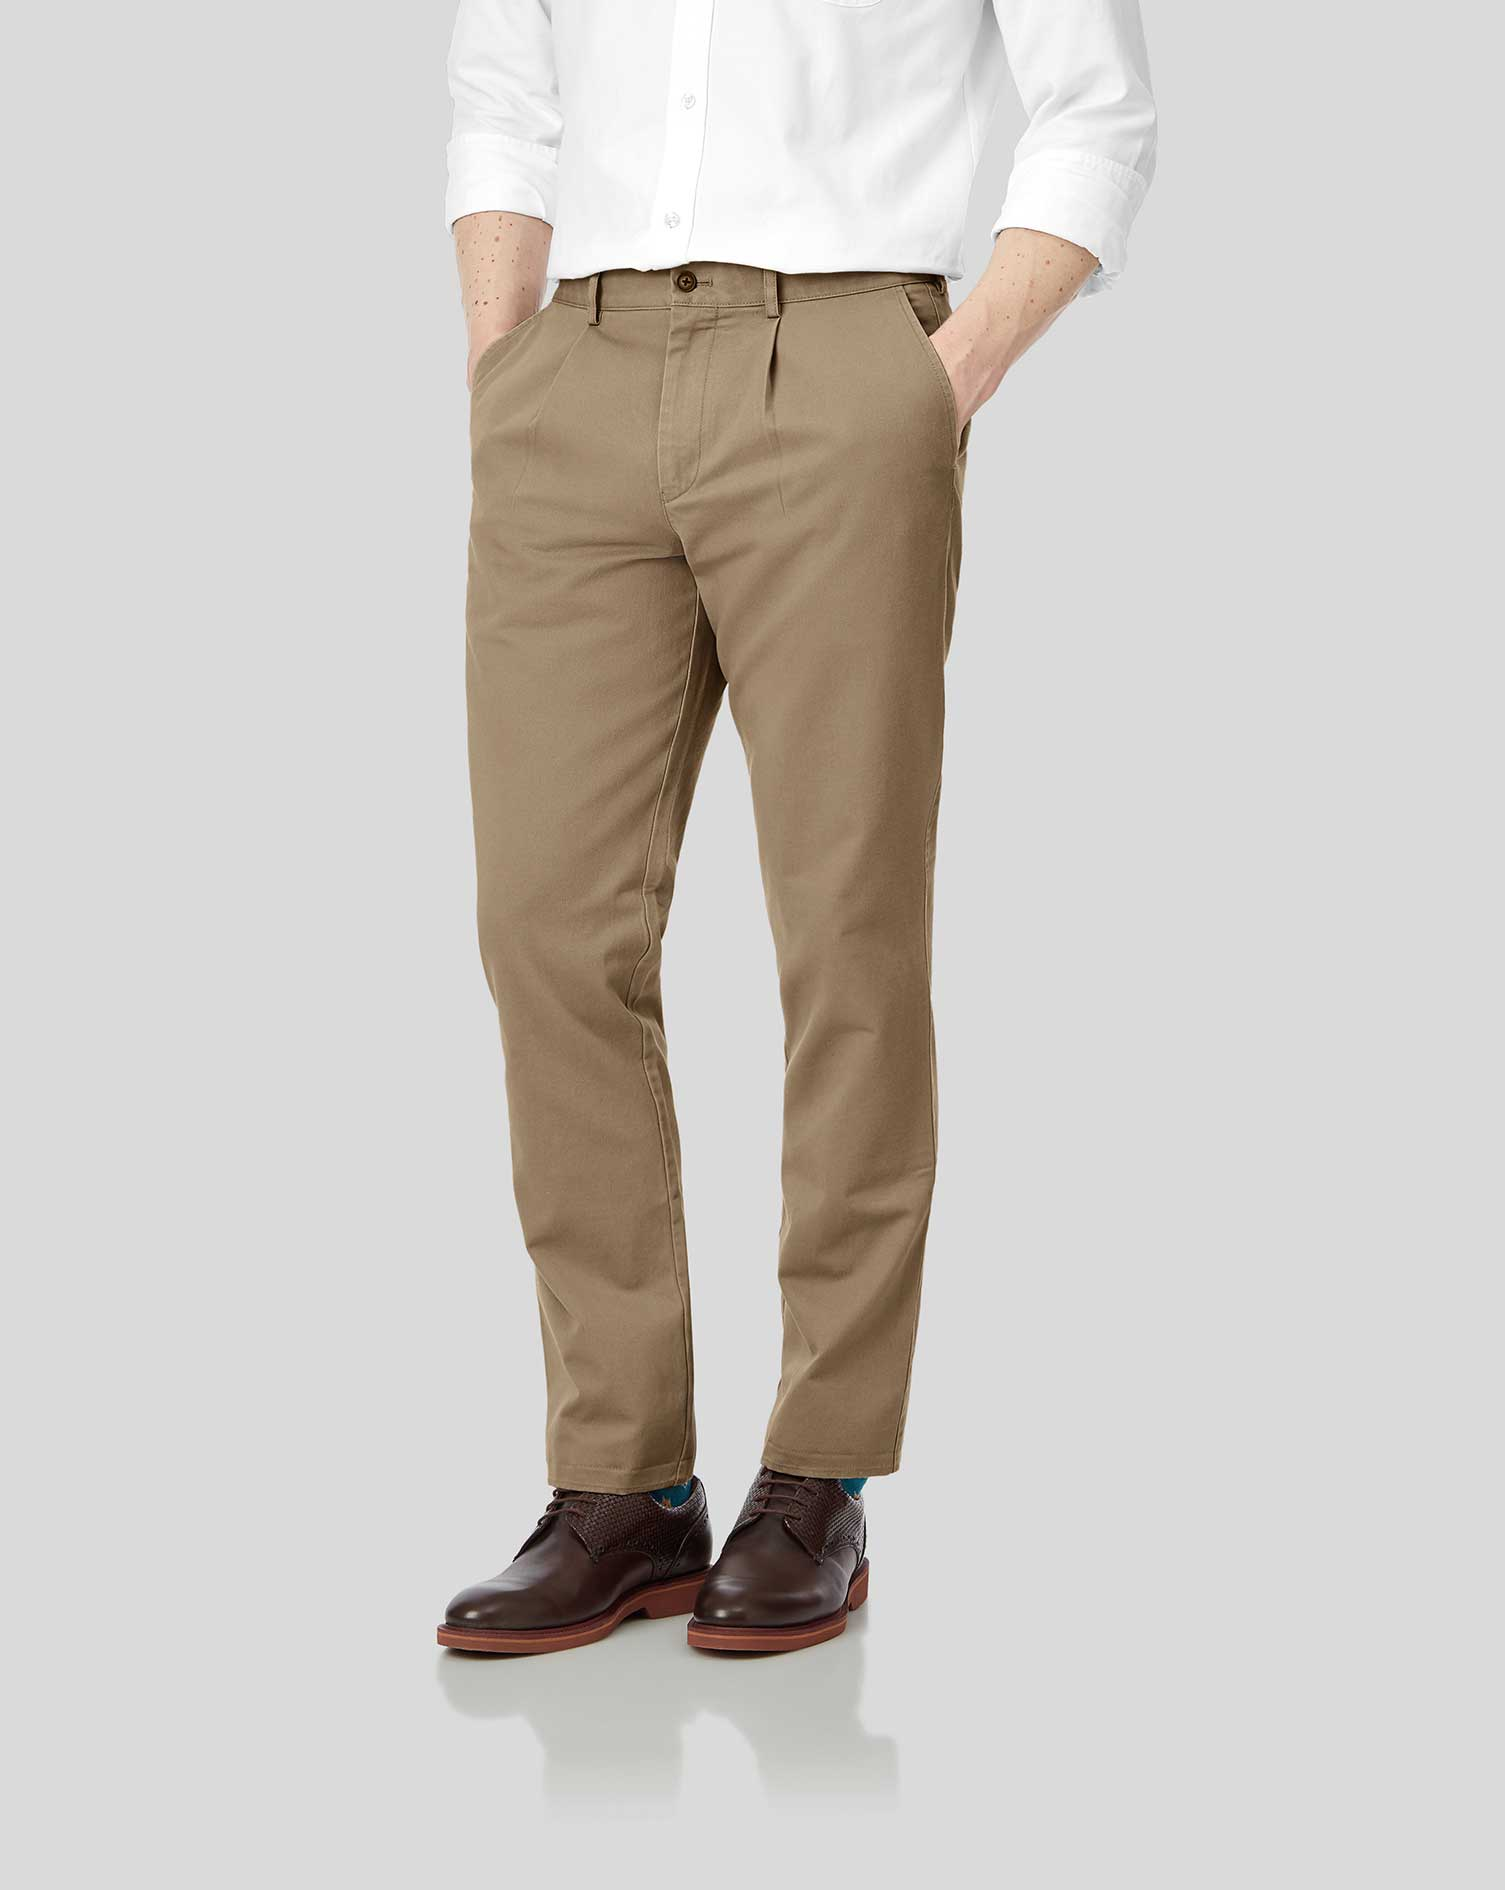 Cotton Tan Single Pleat Soft Washed Chinos